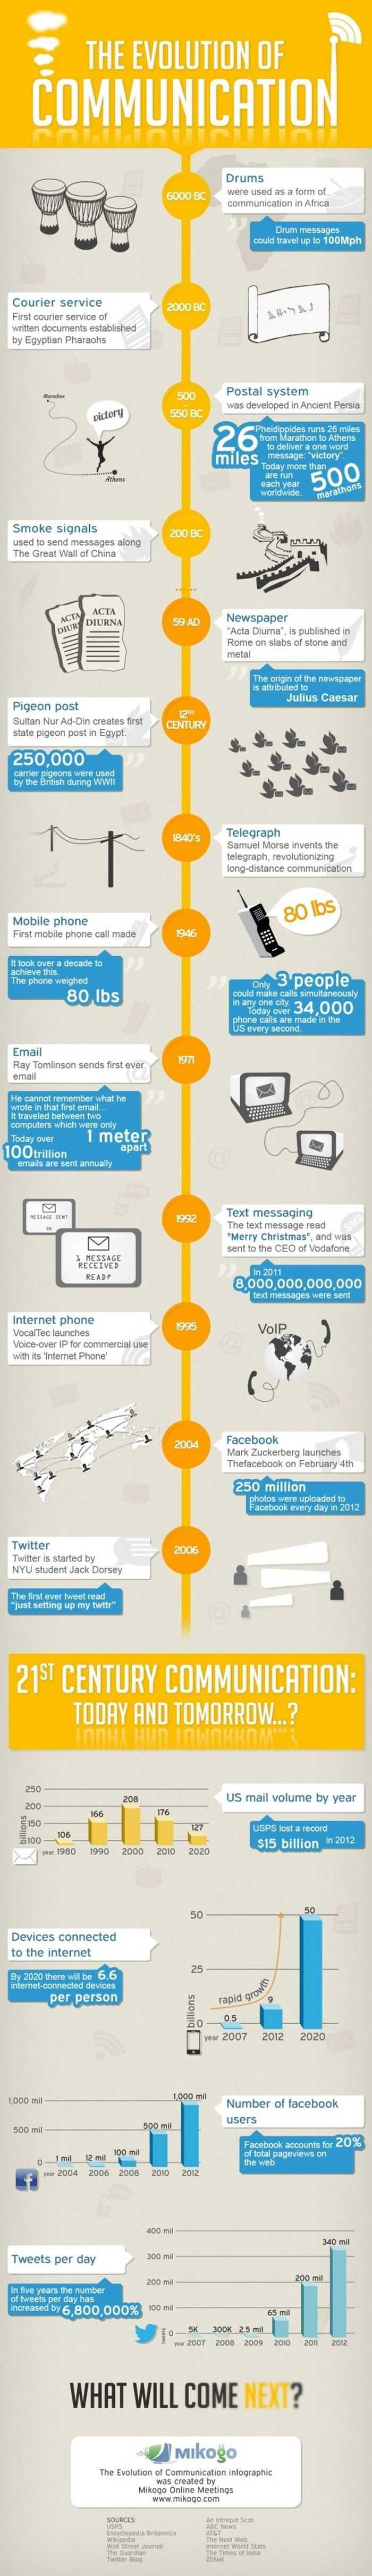 From Smoke Signals To Smartphones - The Evolution Of Communication